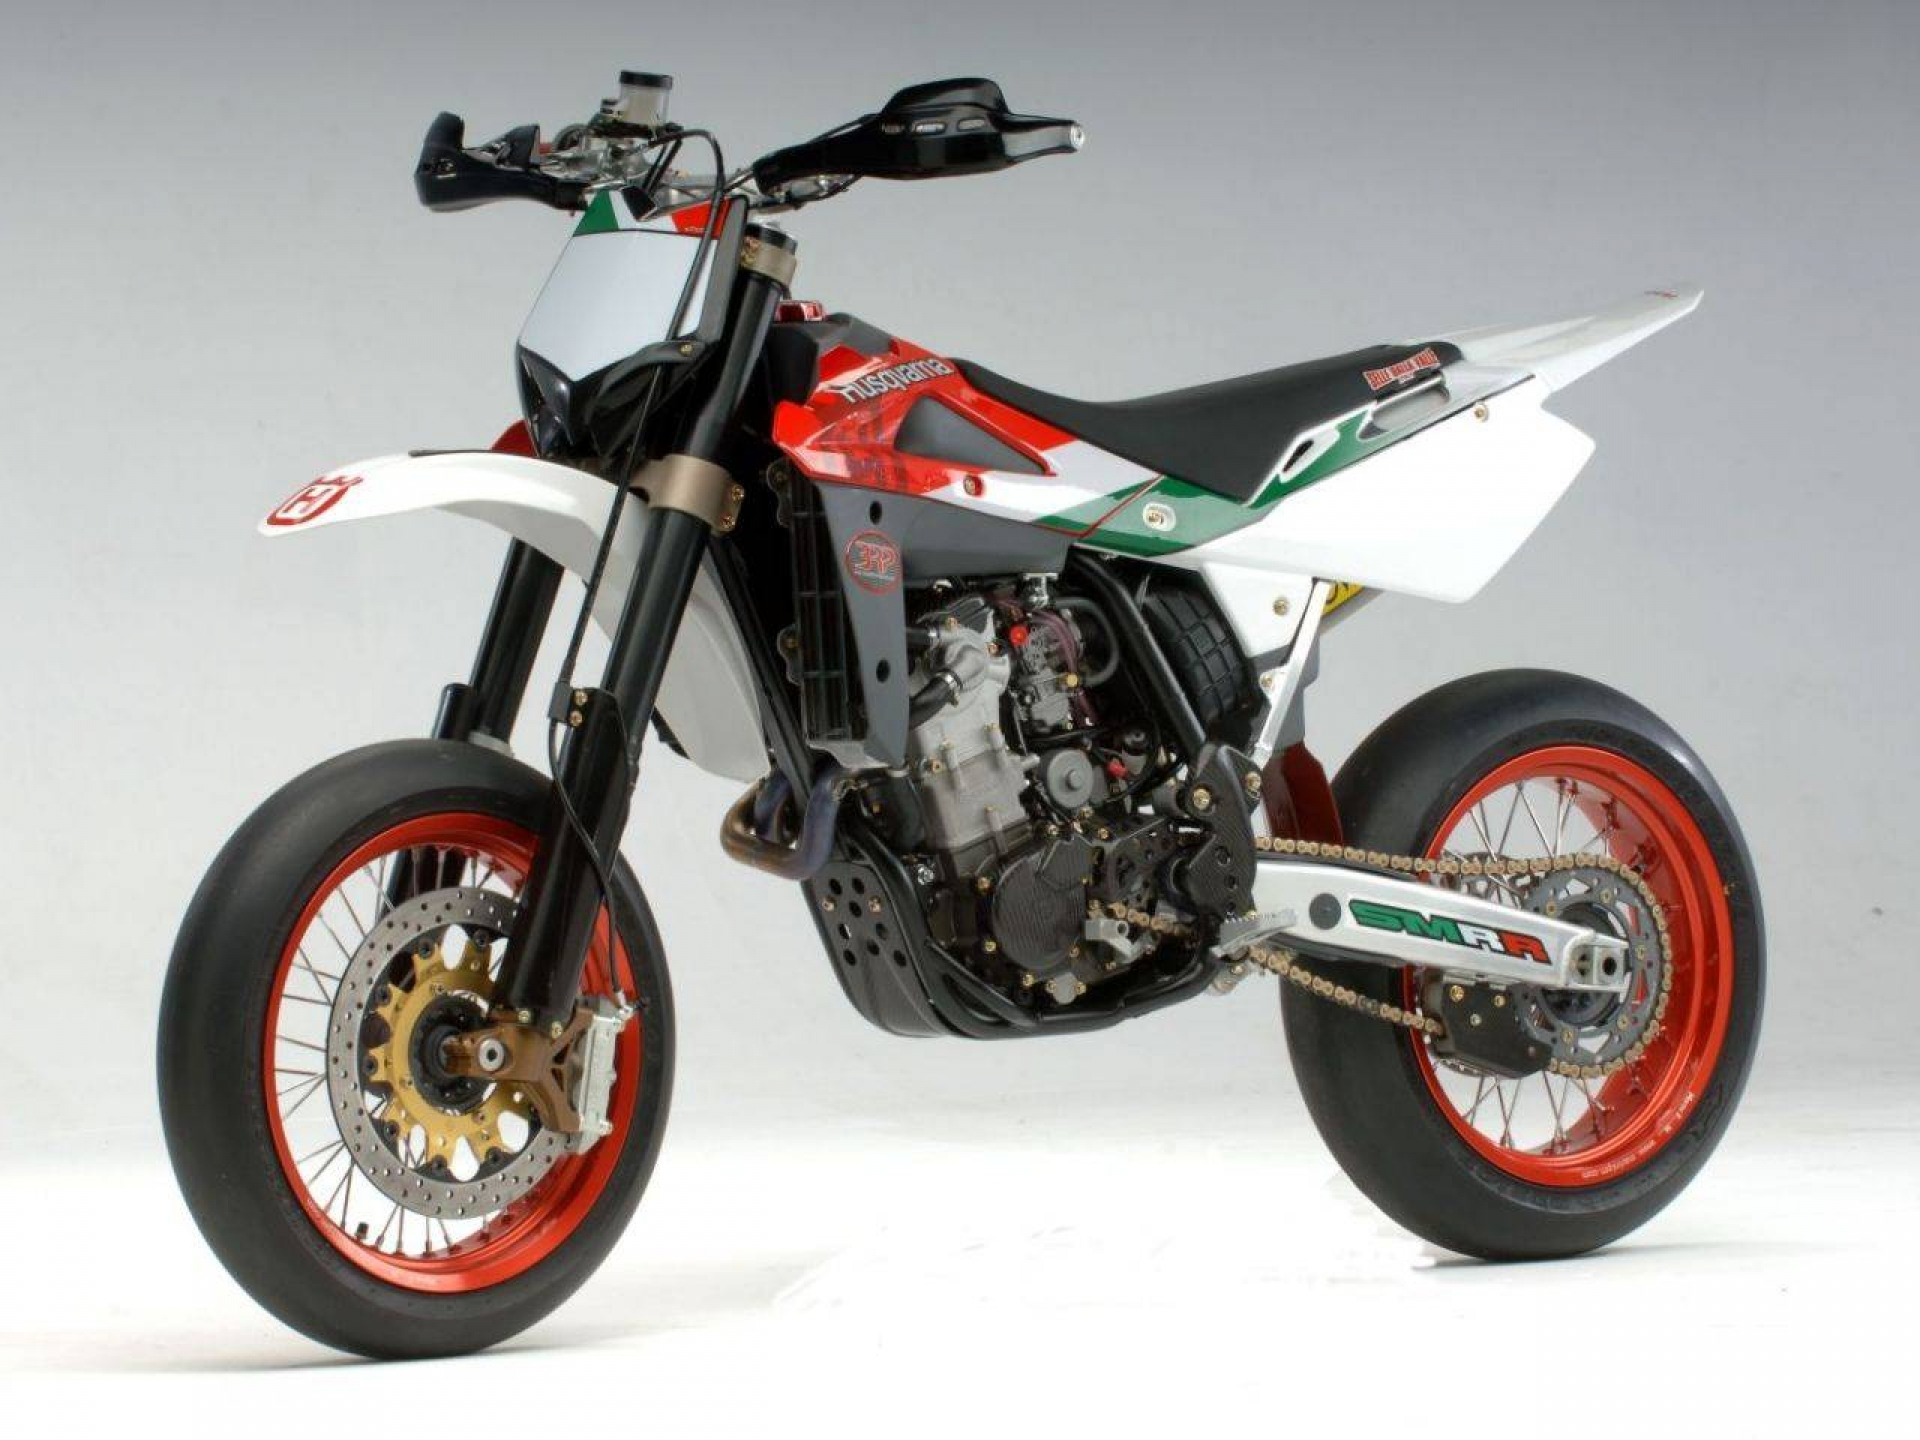 Highland 950 V2 Outback Supermoto 2008 images #169797